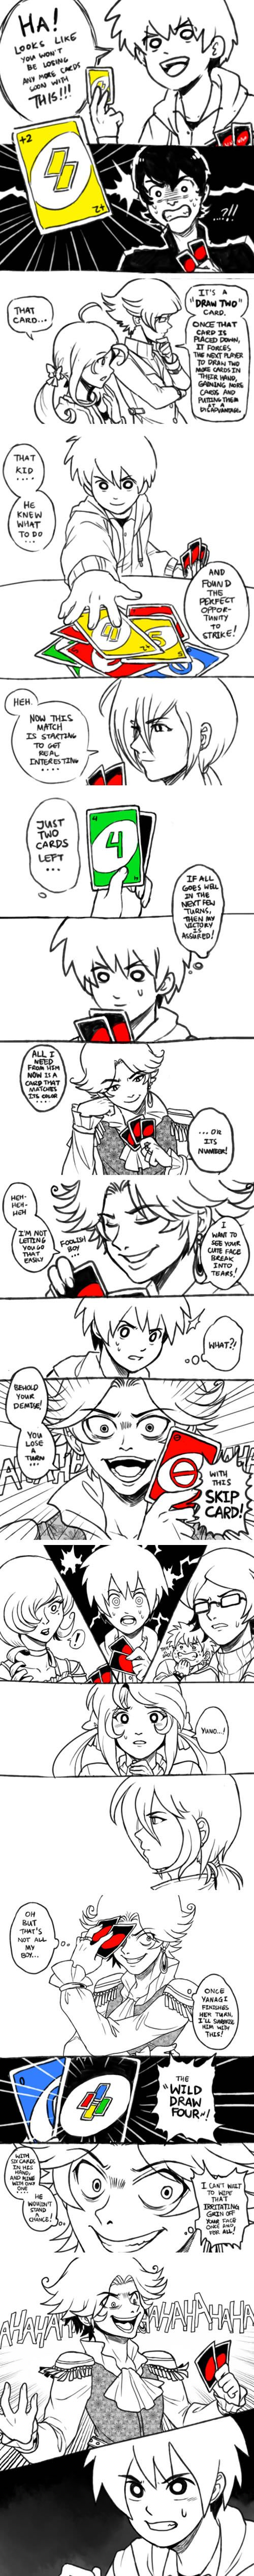 If anime was a comic (by f**kyeahcomicsbaby)